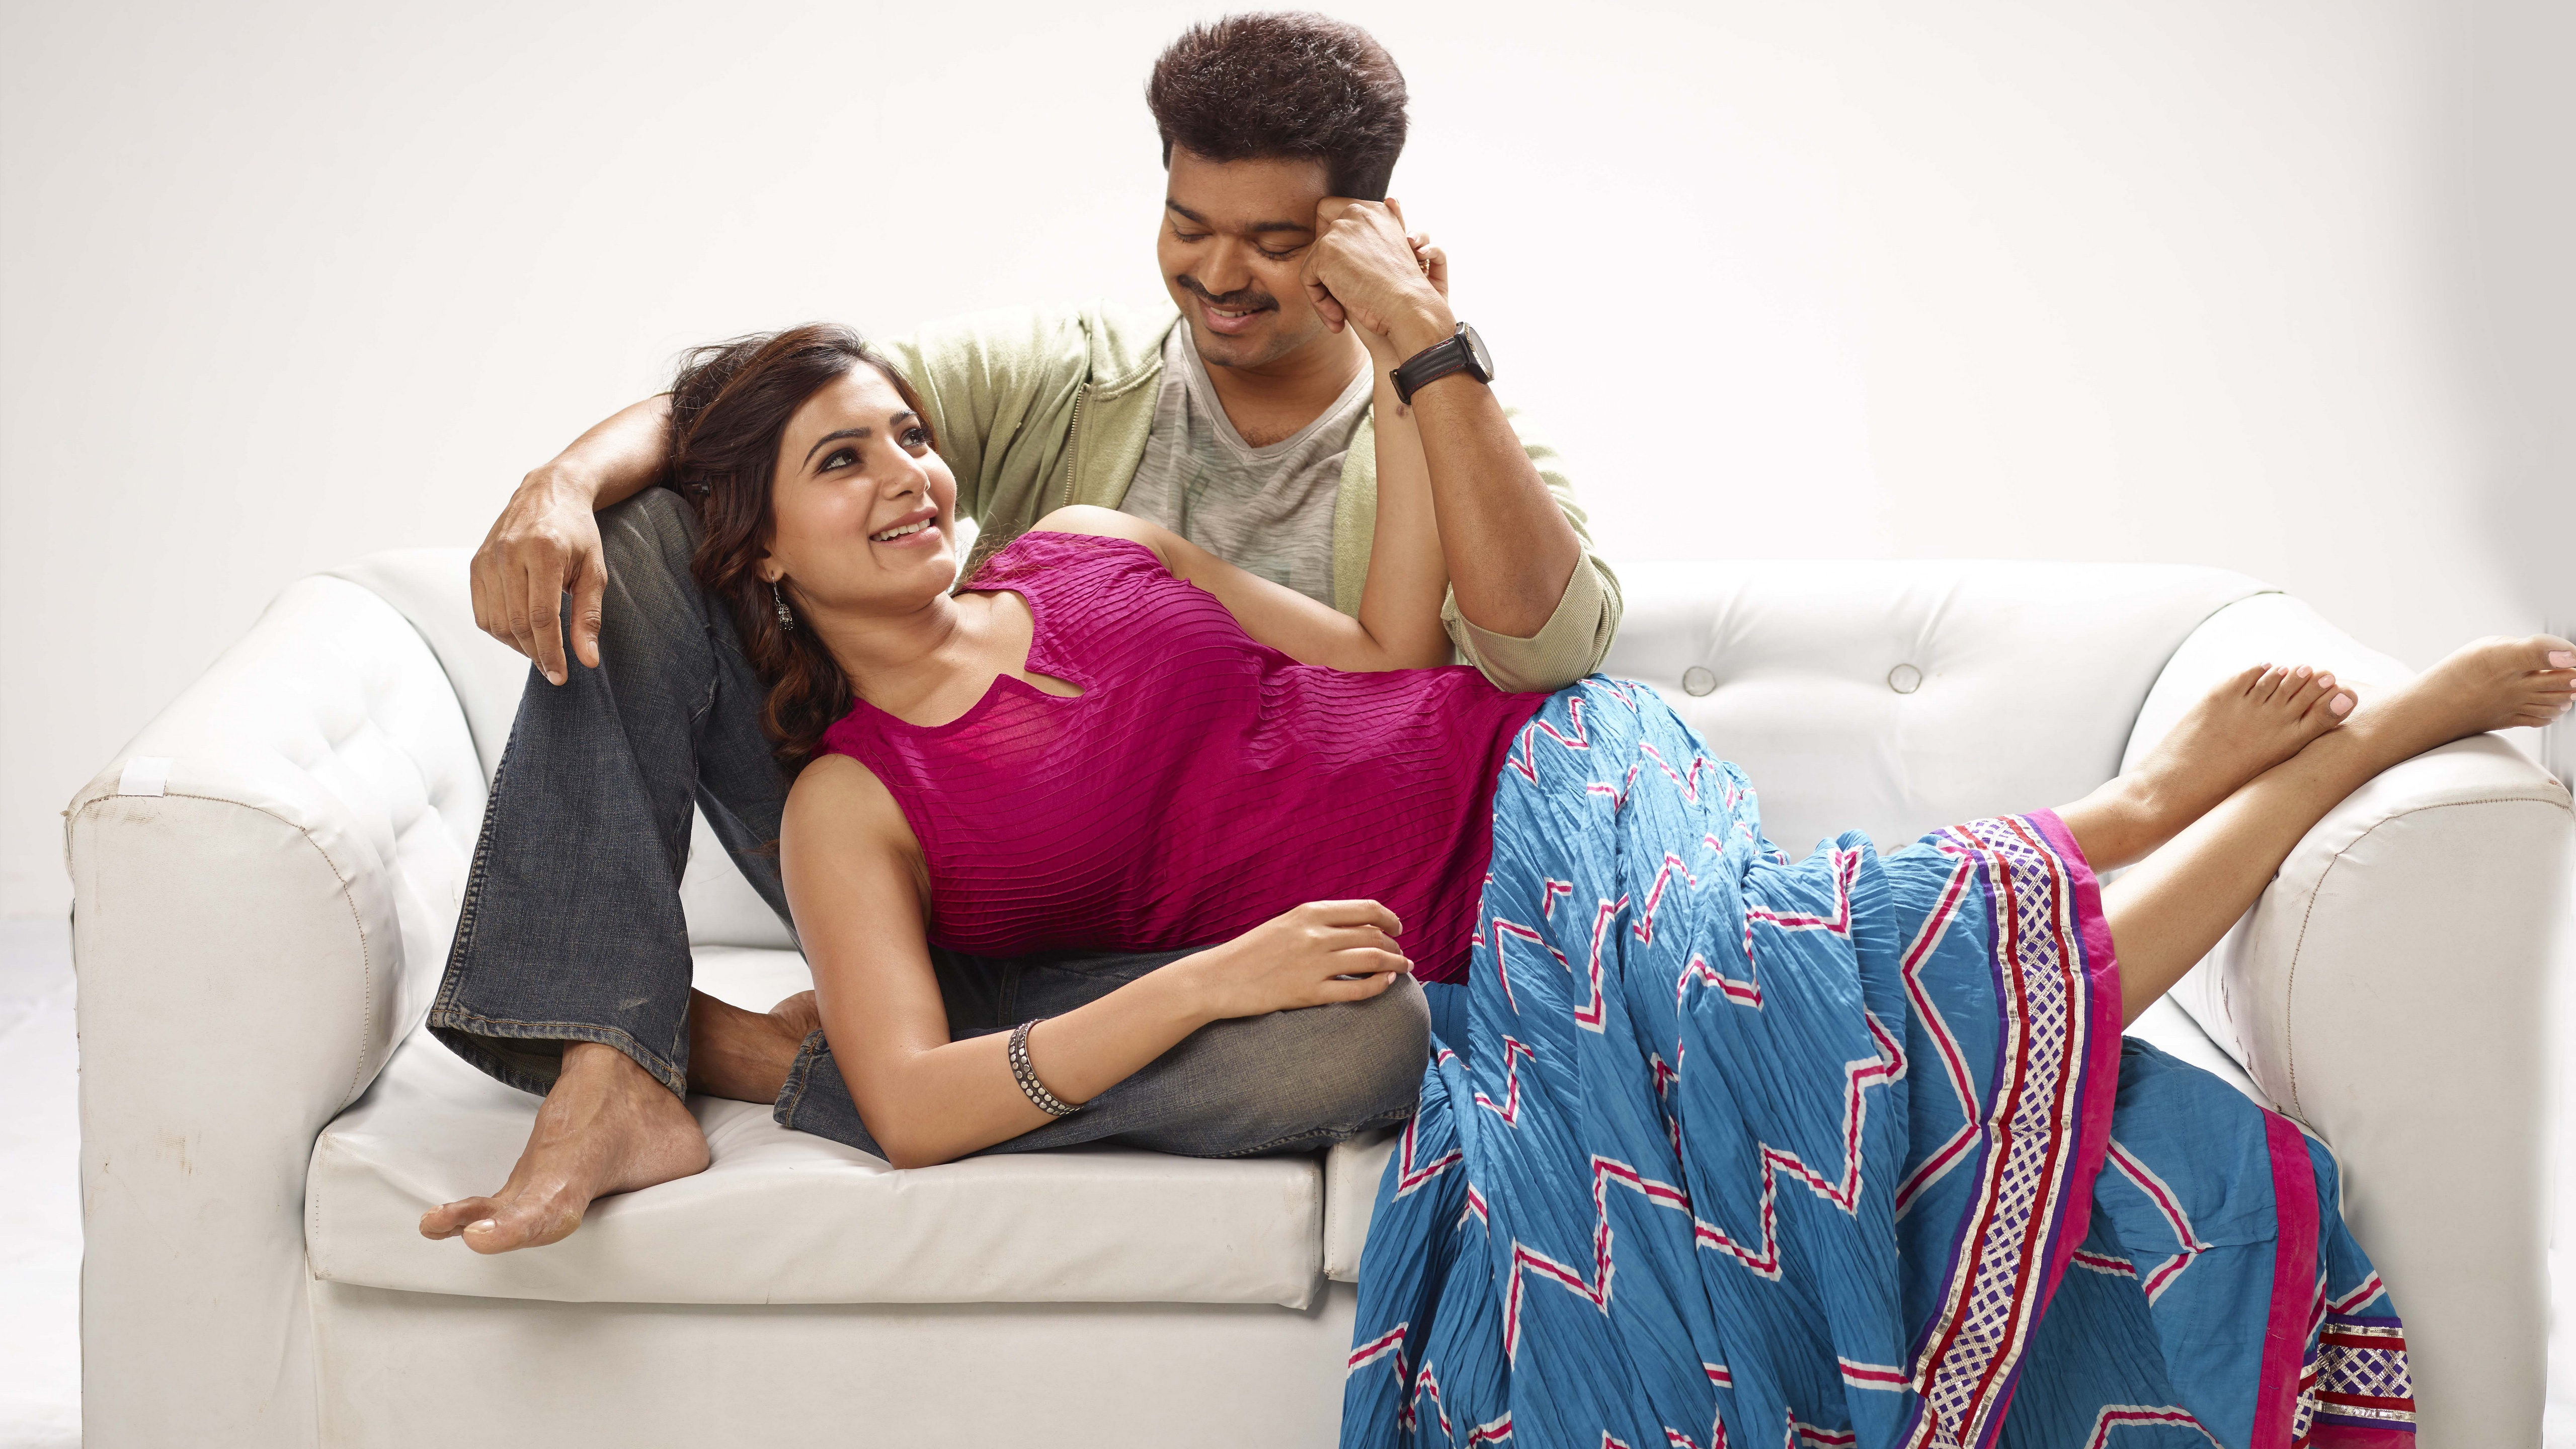 vijay samantha in kaththi wallpapers in jpg format for free download